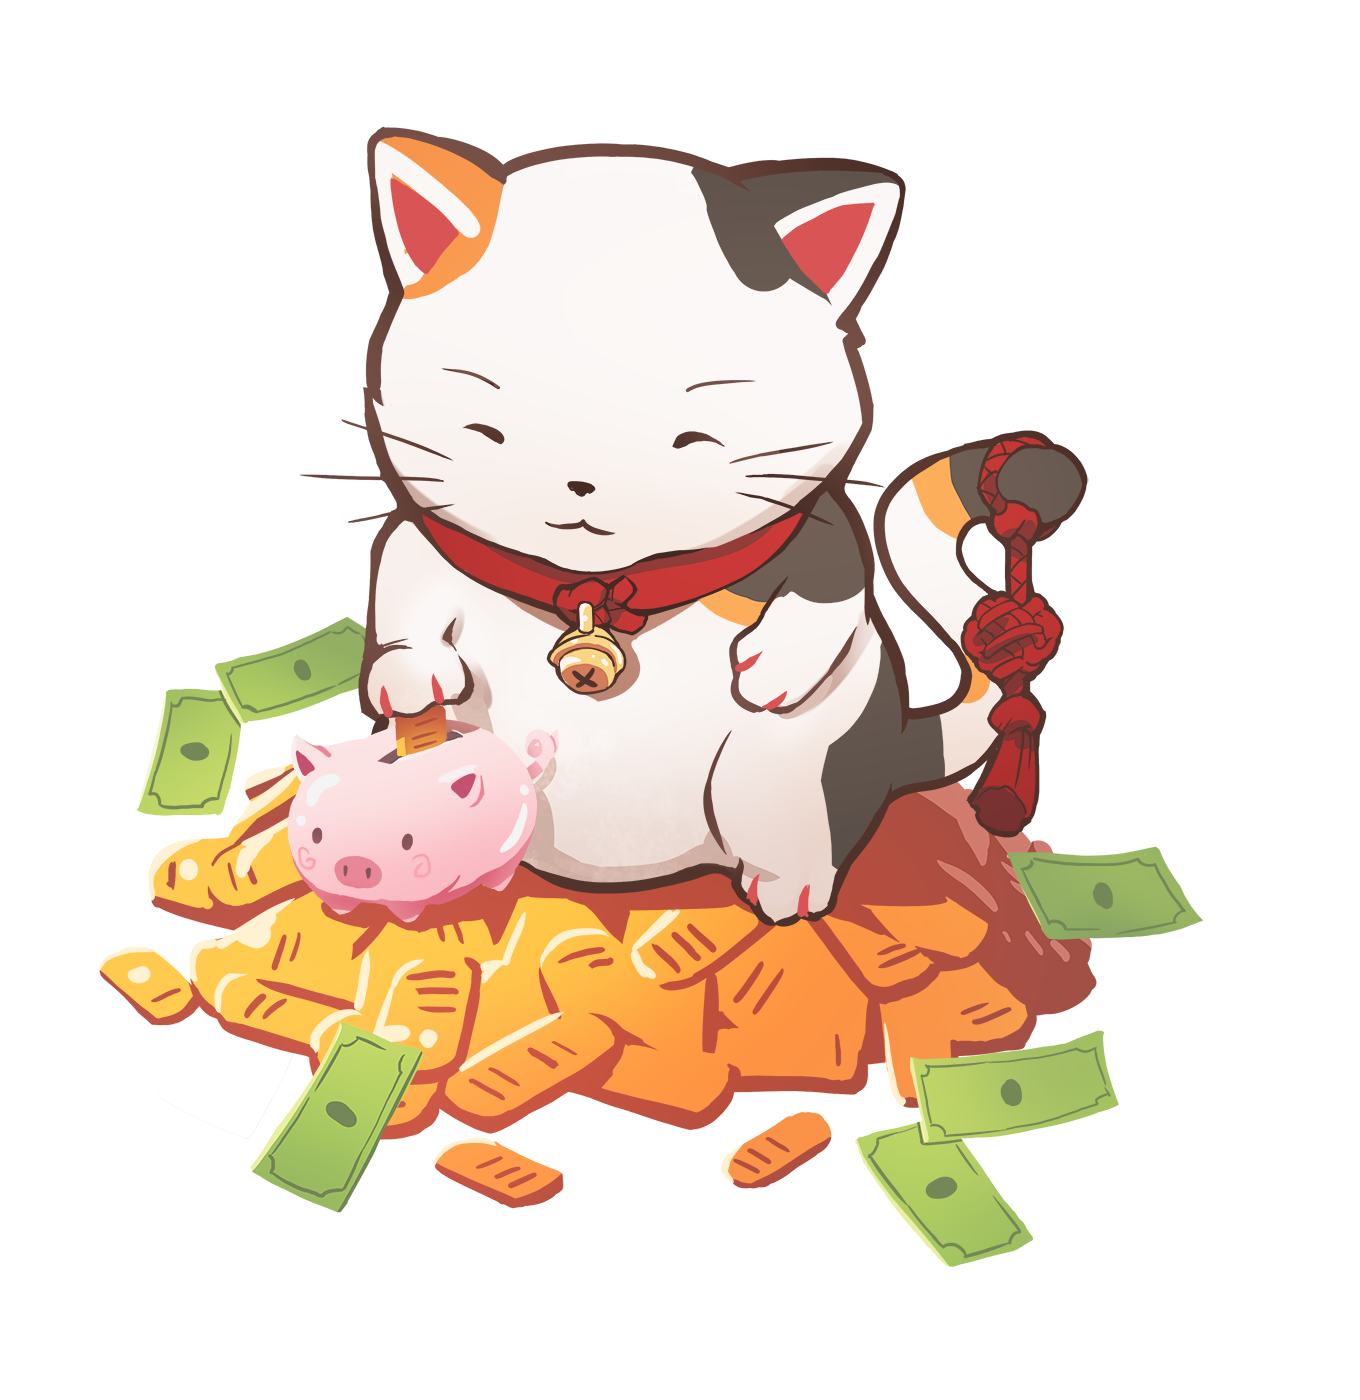 chibi cat illustration